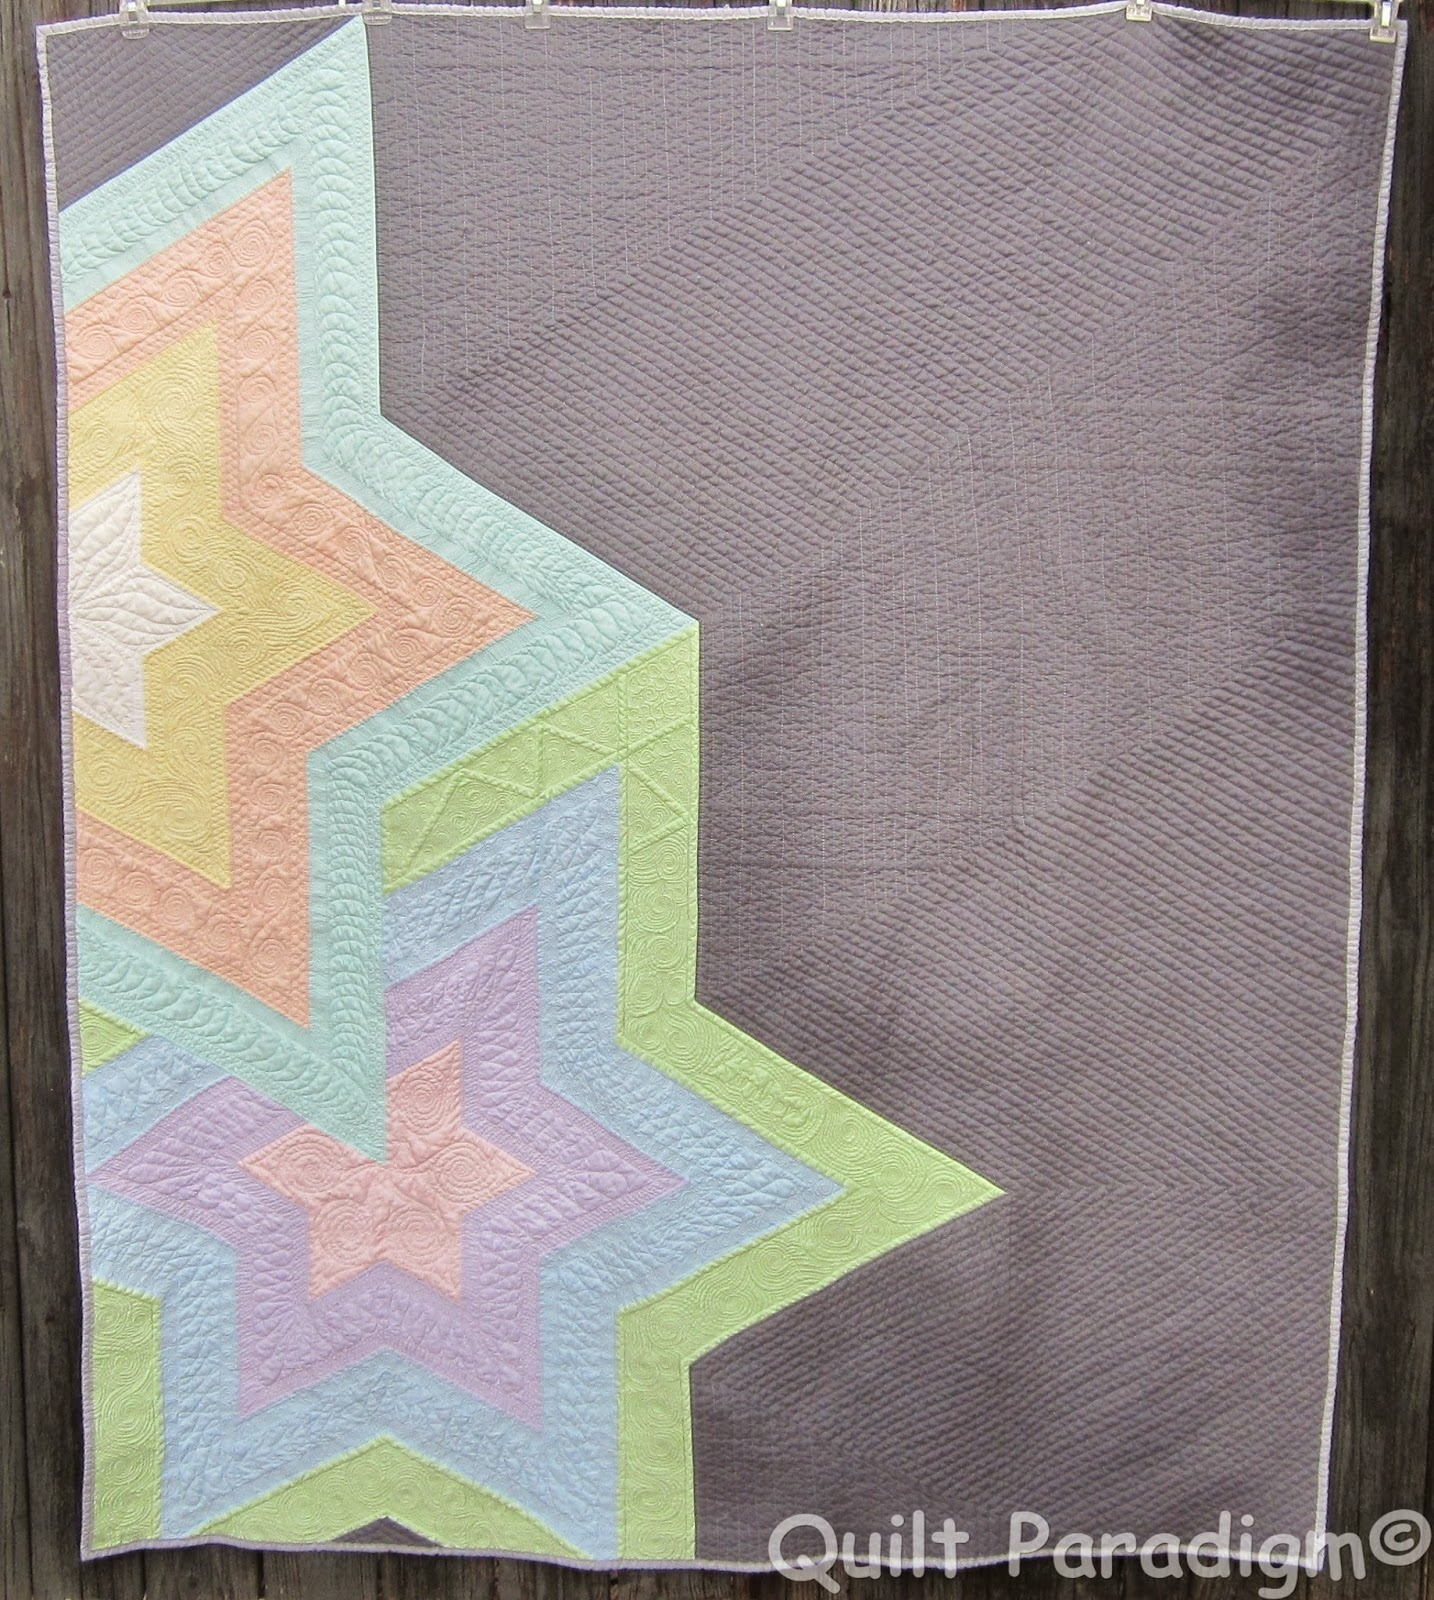 http://quiltparadigm.blogspot.com/2014/12/pastel-nightmare-over.html